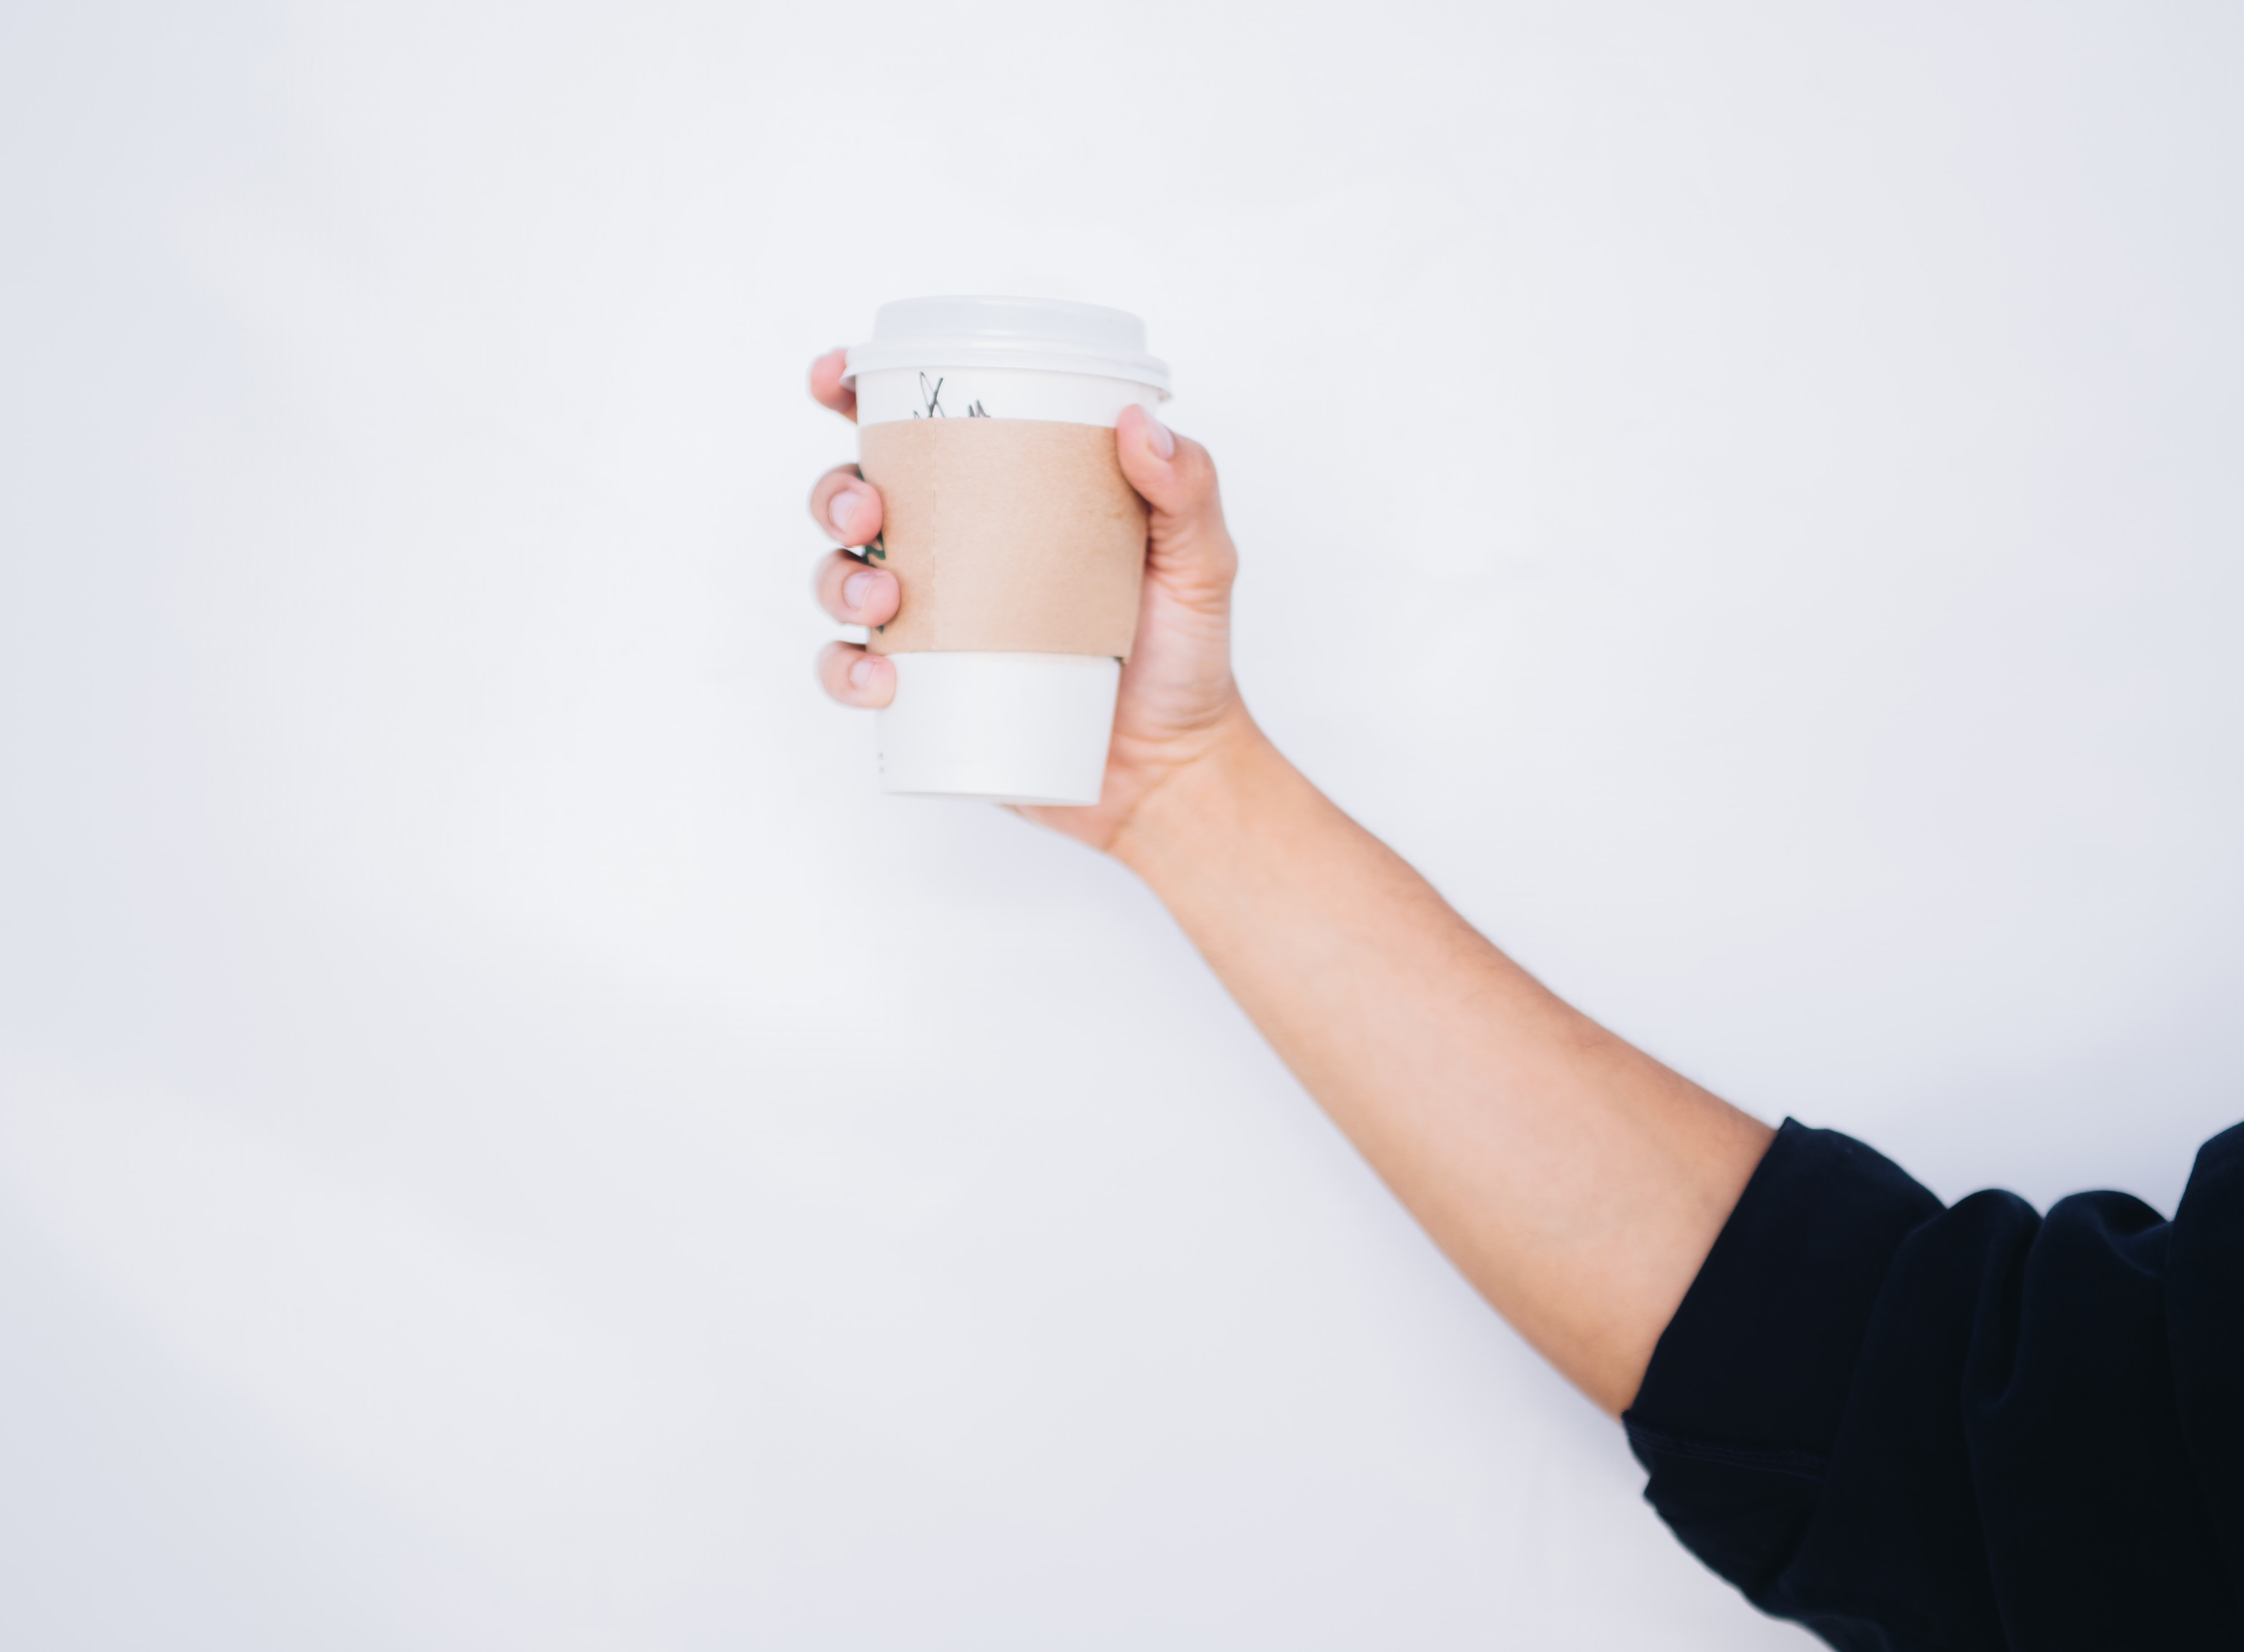 A coffee cup is held dramatically